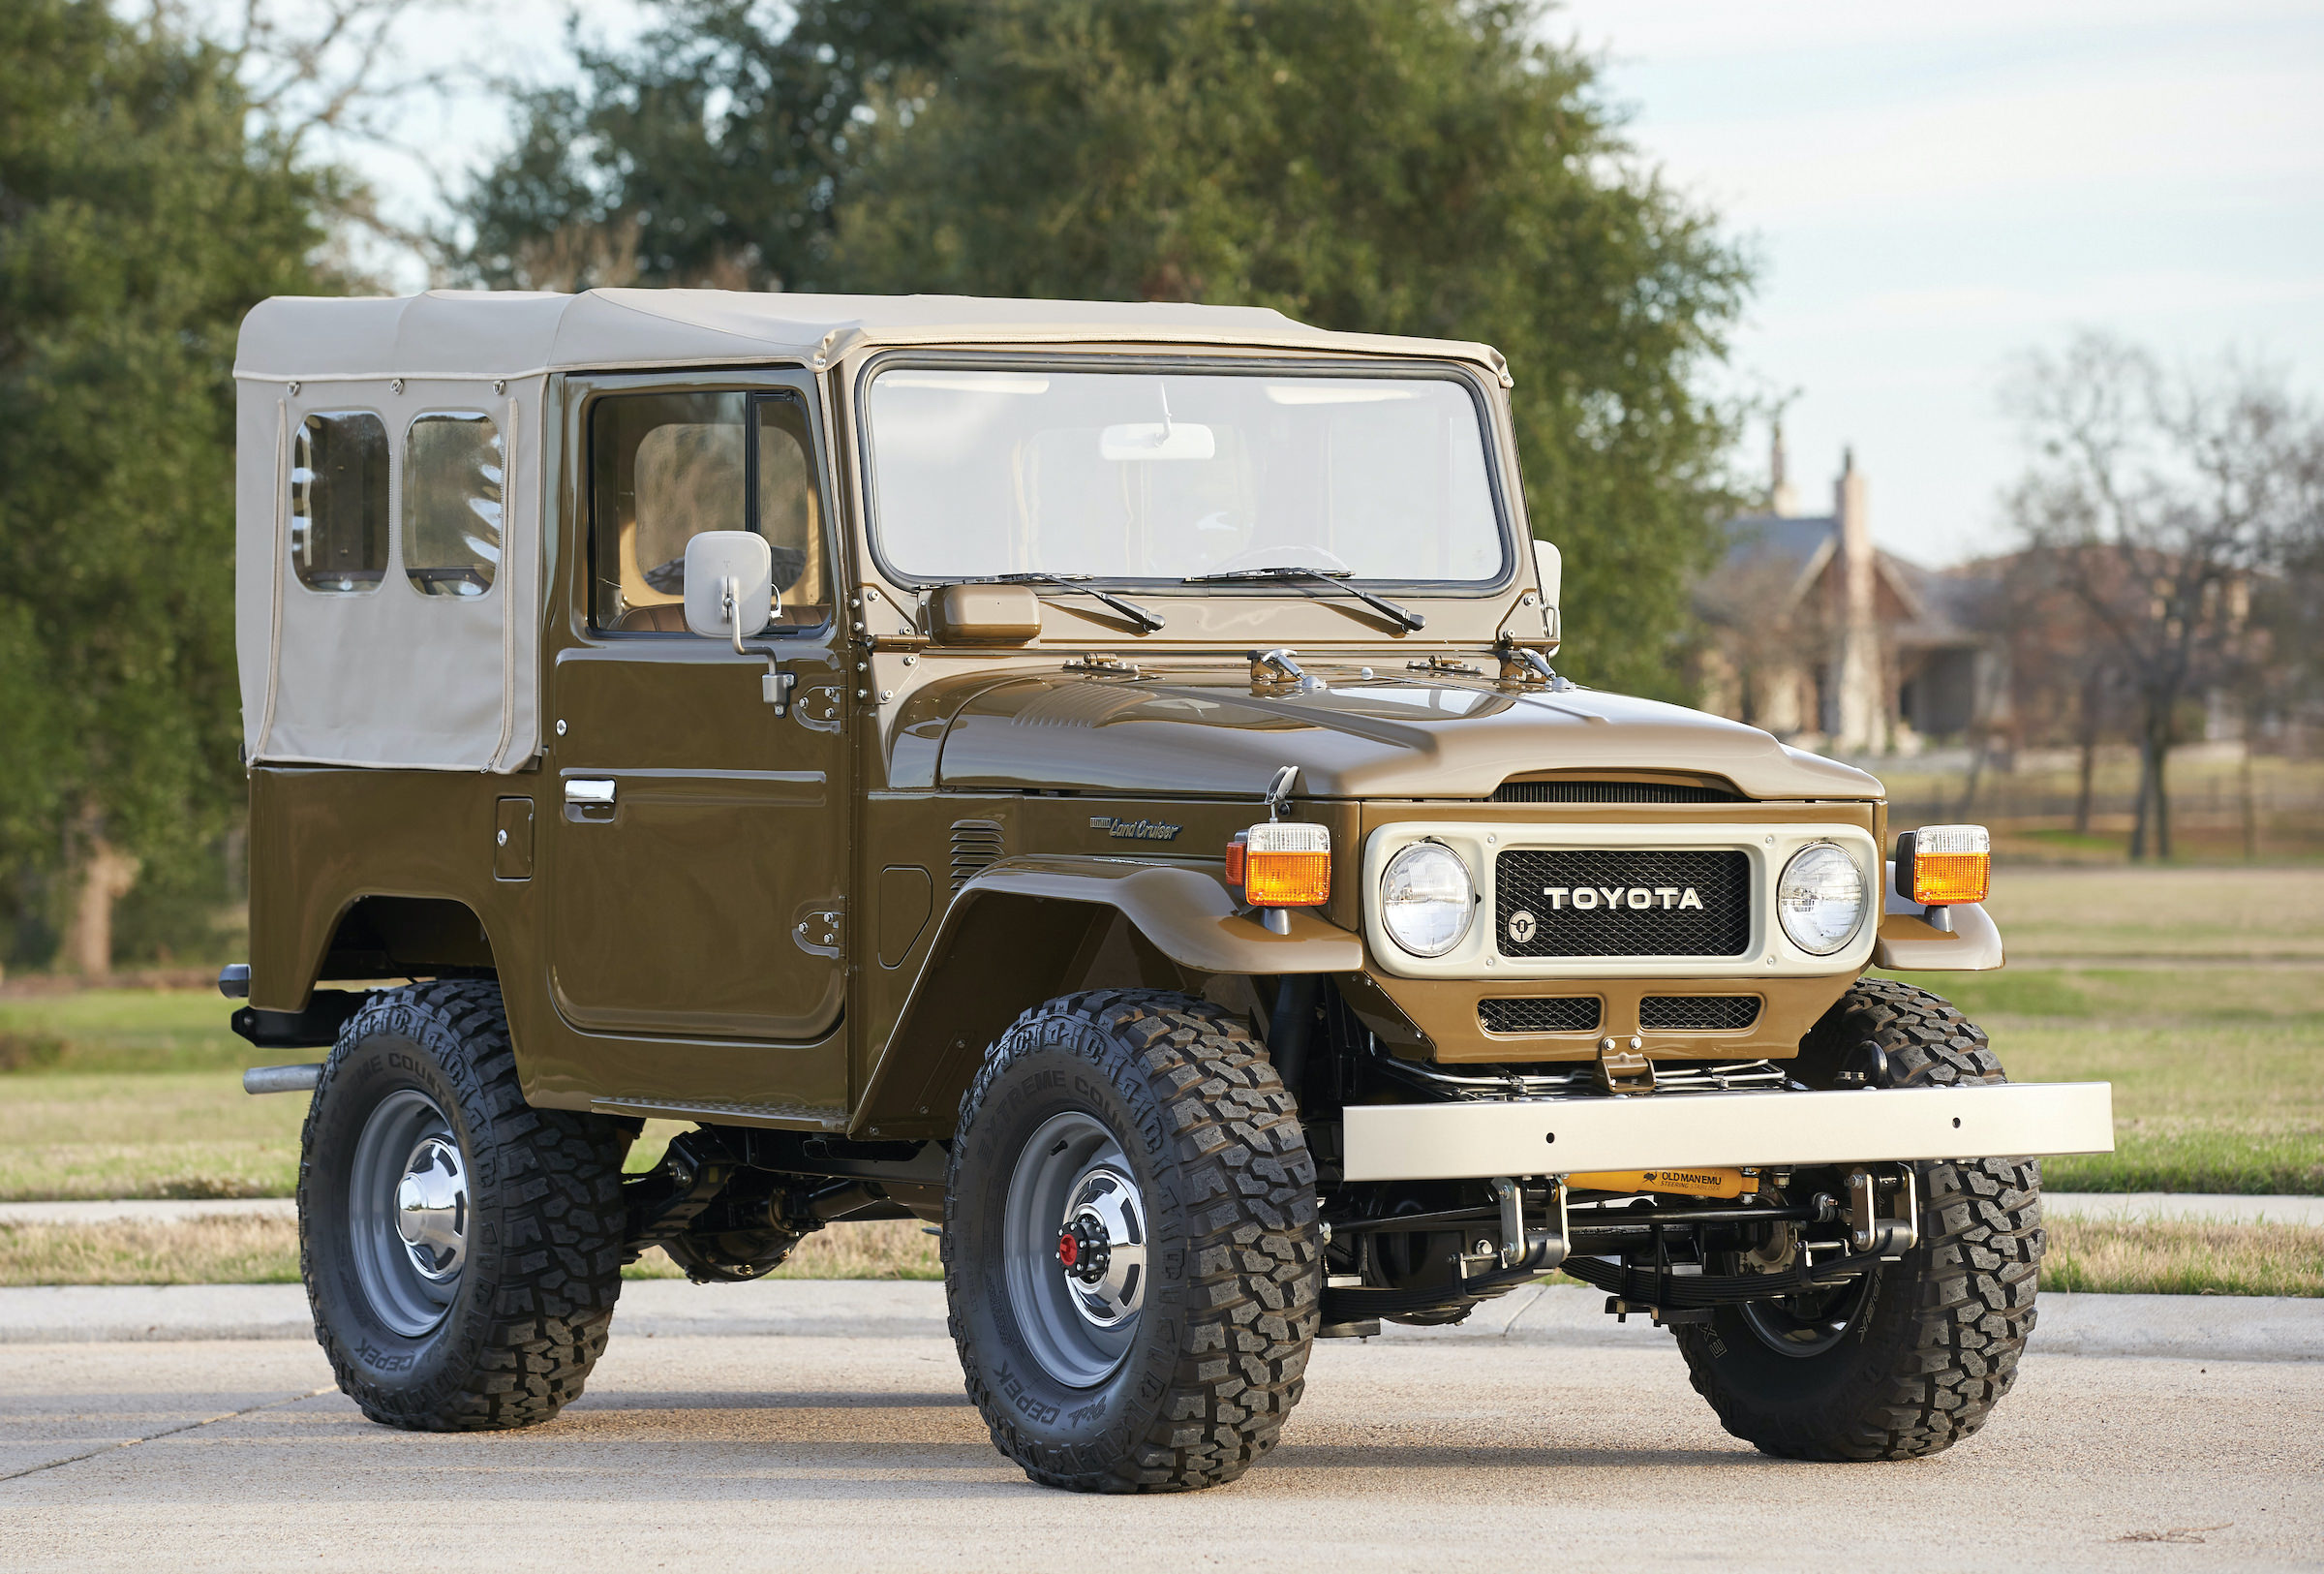 Jeep Soft Top Parts >> 1980 Toyota FJ40 Land Cruiser Soft-Top - The Mighty Japanese Jeep Rival